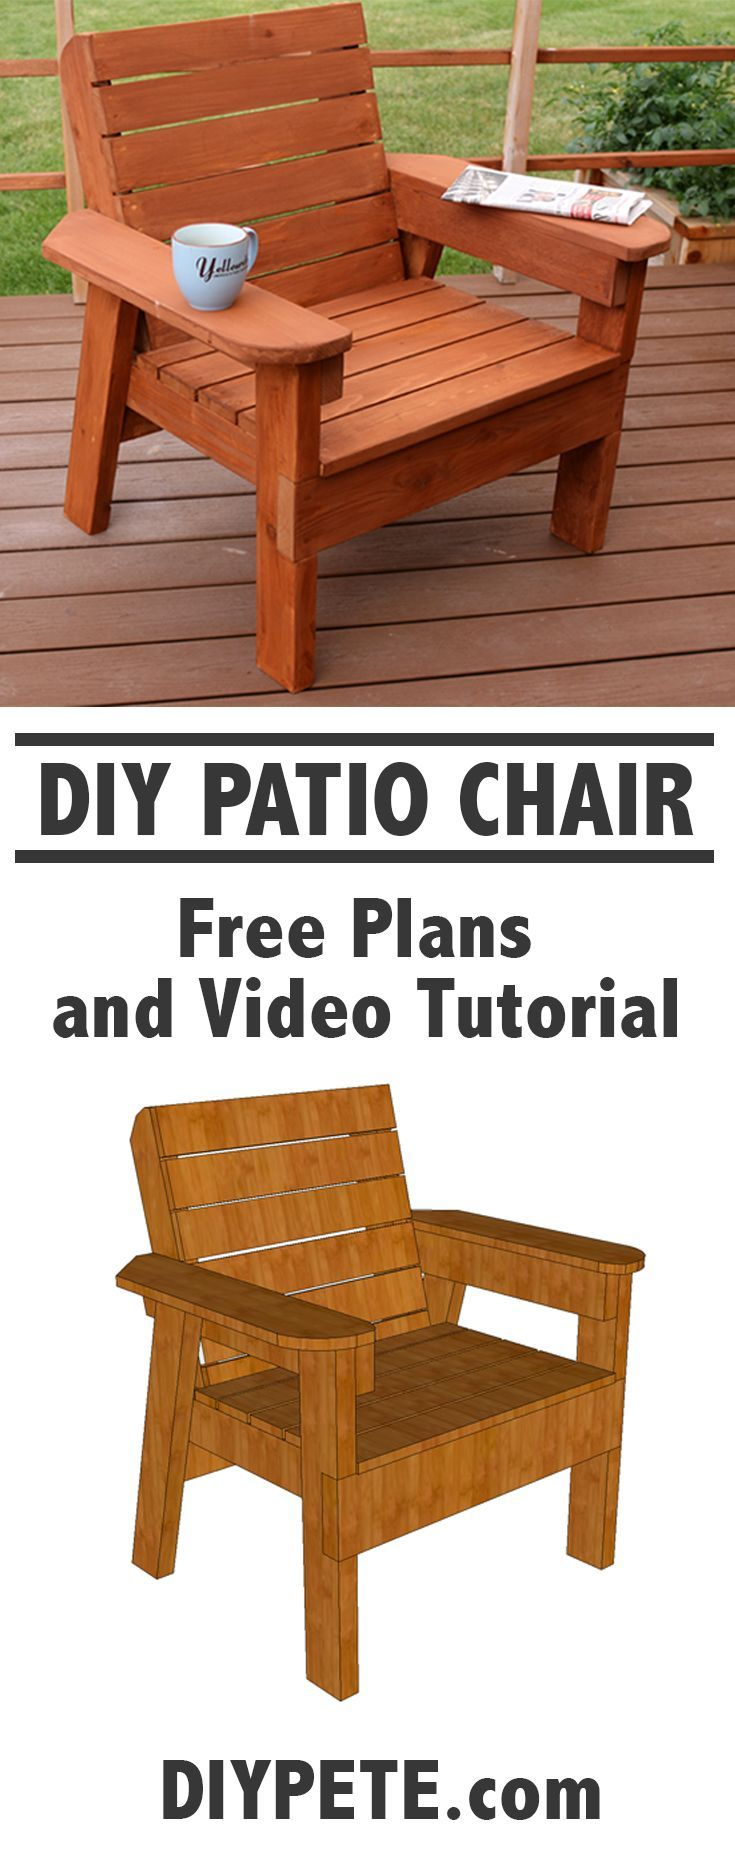 Wooden beach lounge chair - Learn How To Build A Patio Chair This Is A Fun And Simple Project You